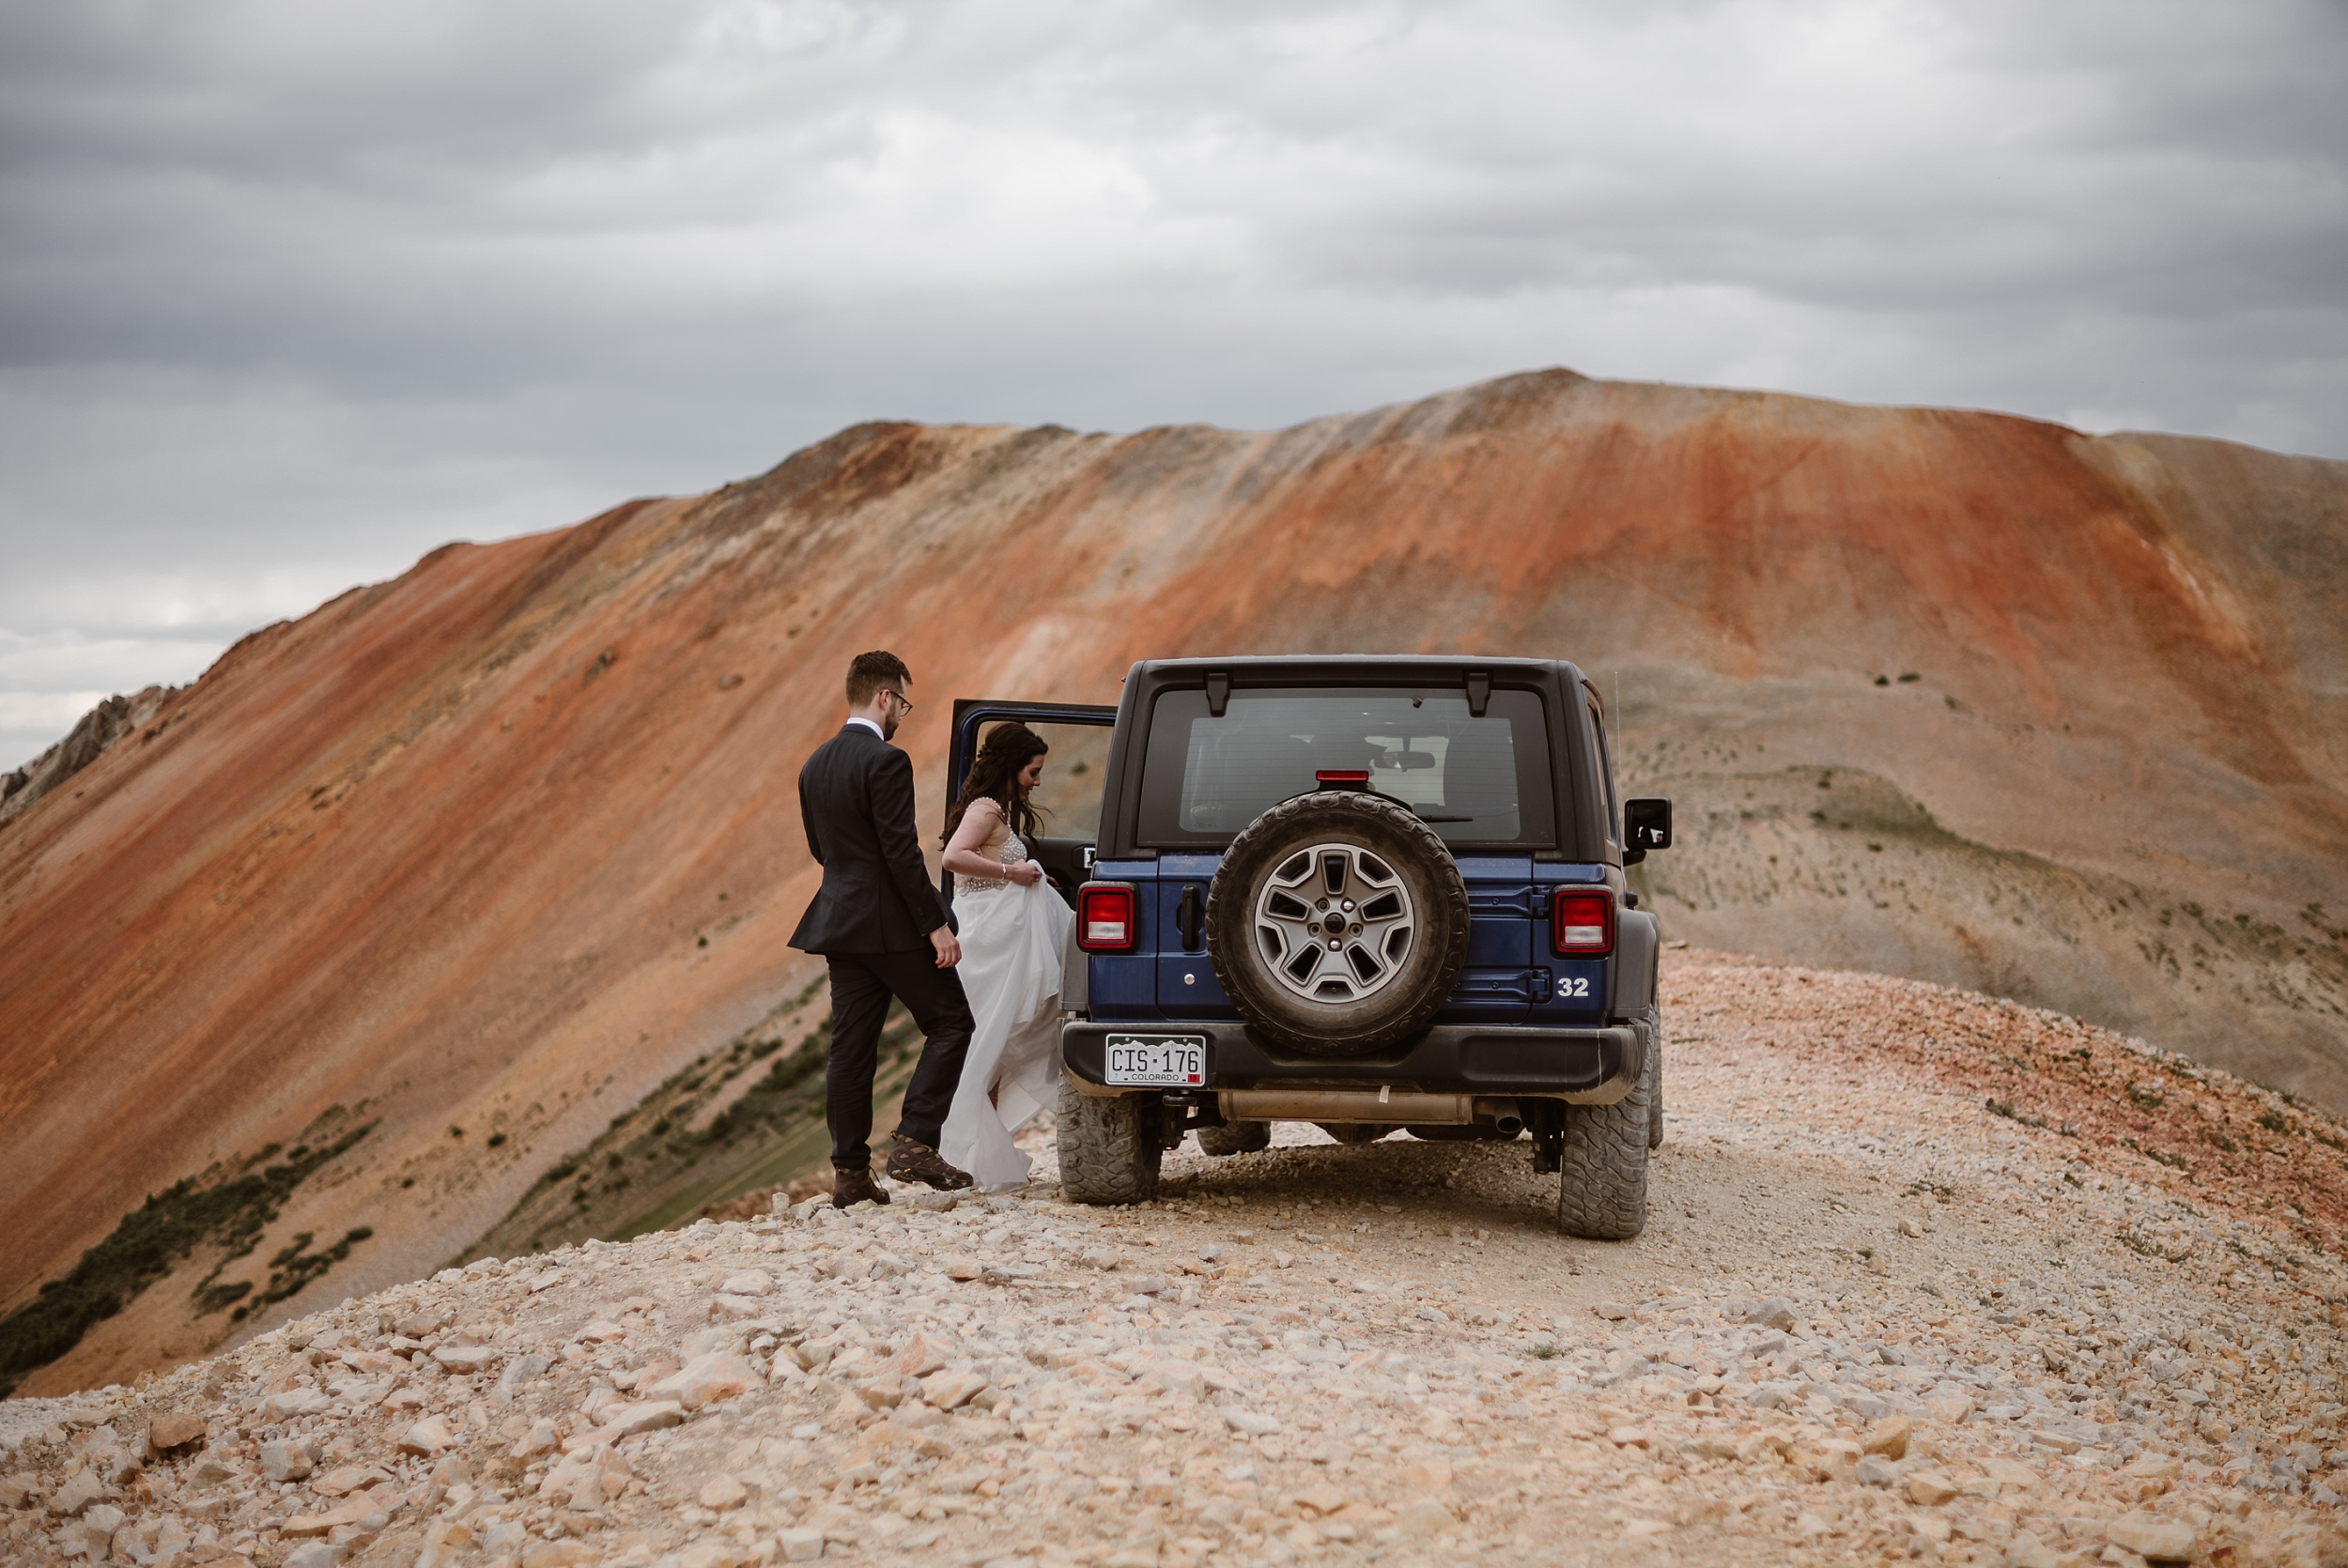 Katie and Logan, the bride and groom, climb into the adventure Jeep from where it's parked, on a dusty, rocky 4x4 road at the top of a mountain. The Jeep wedding car will take them to the next location where they plan to have their elopement ceremony for their Colorado mountain wedding.